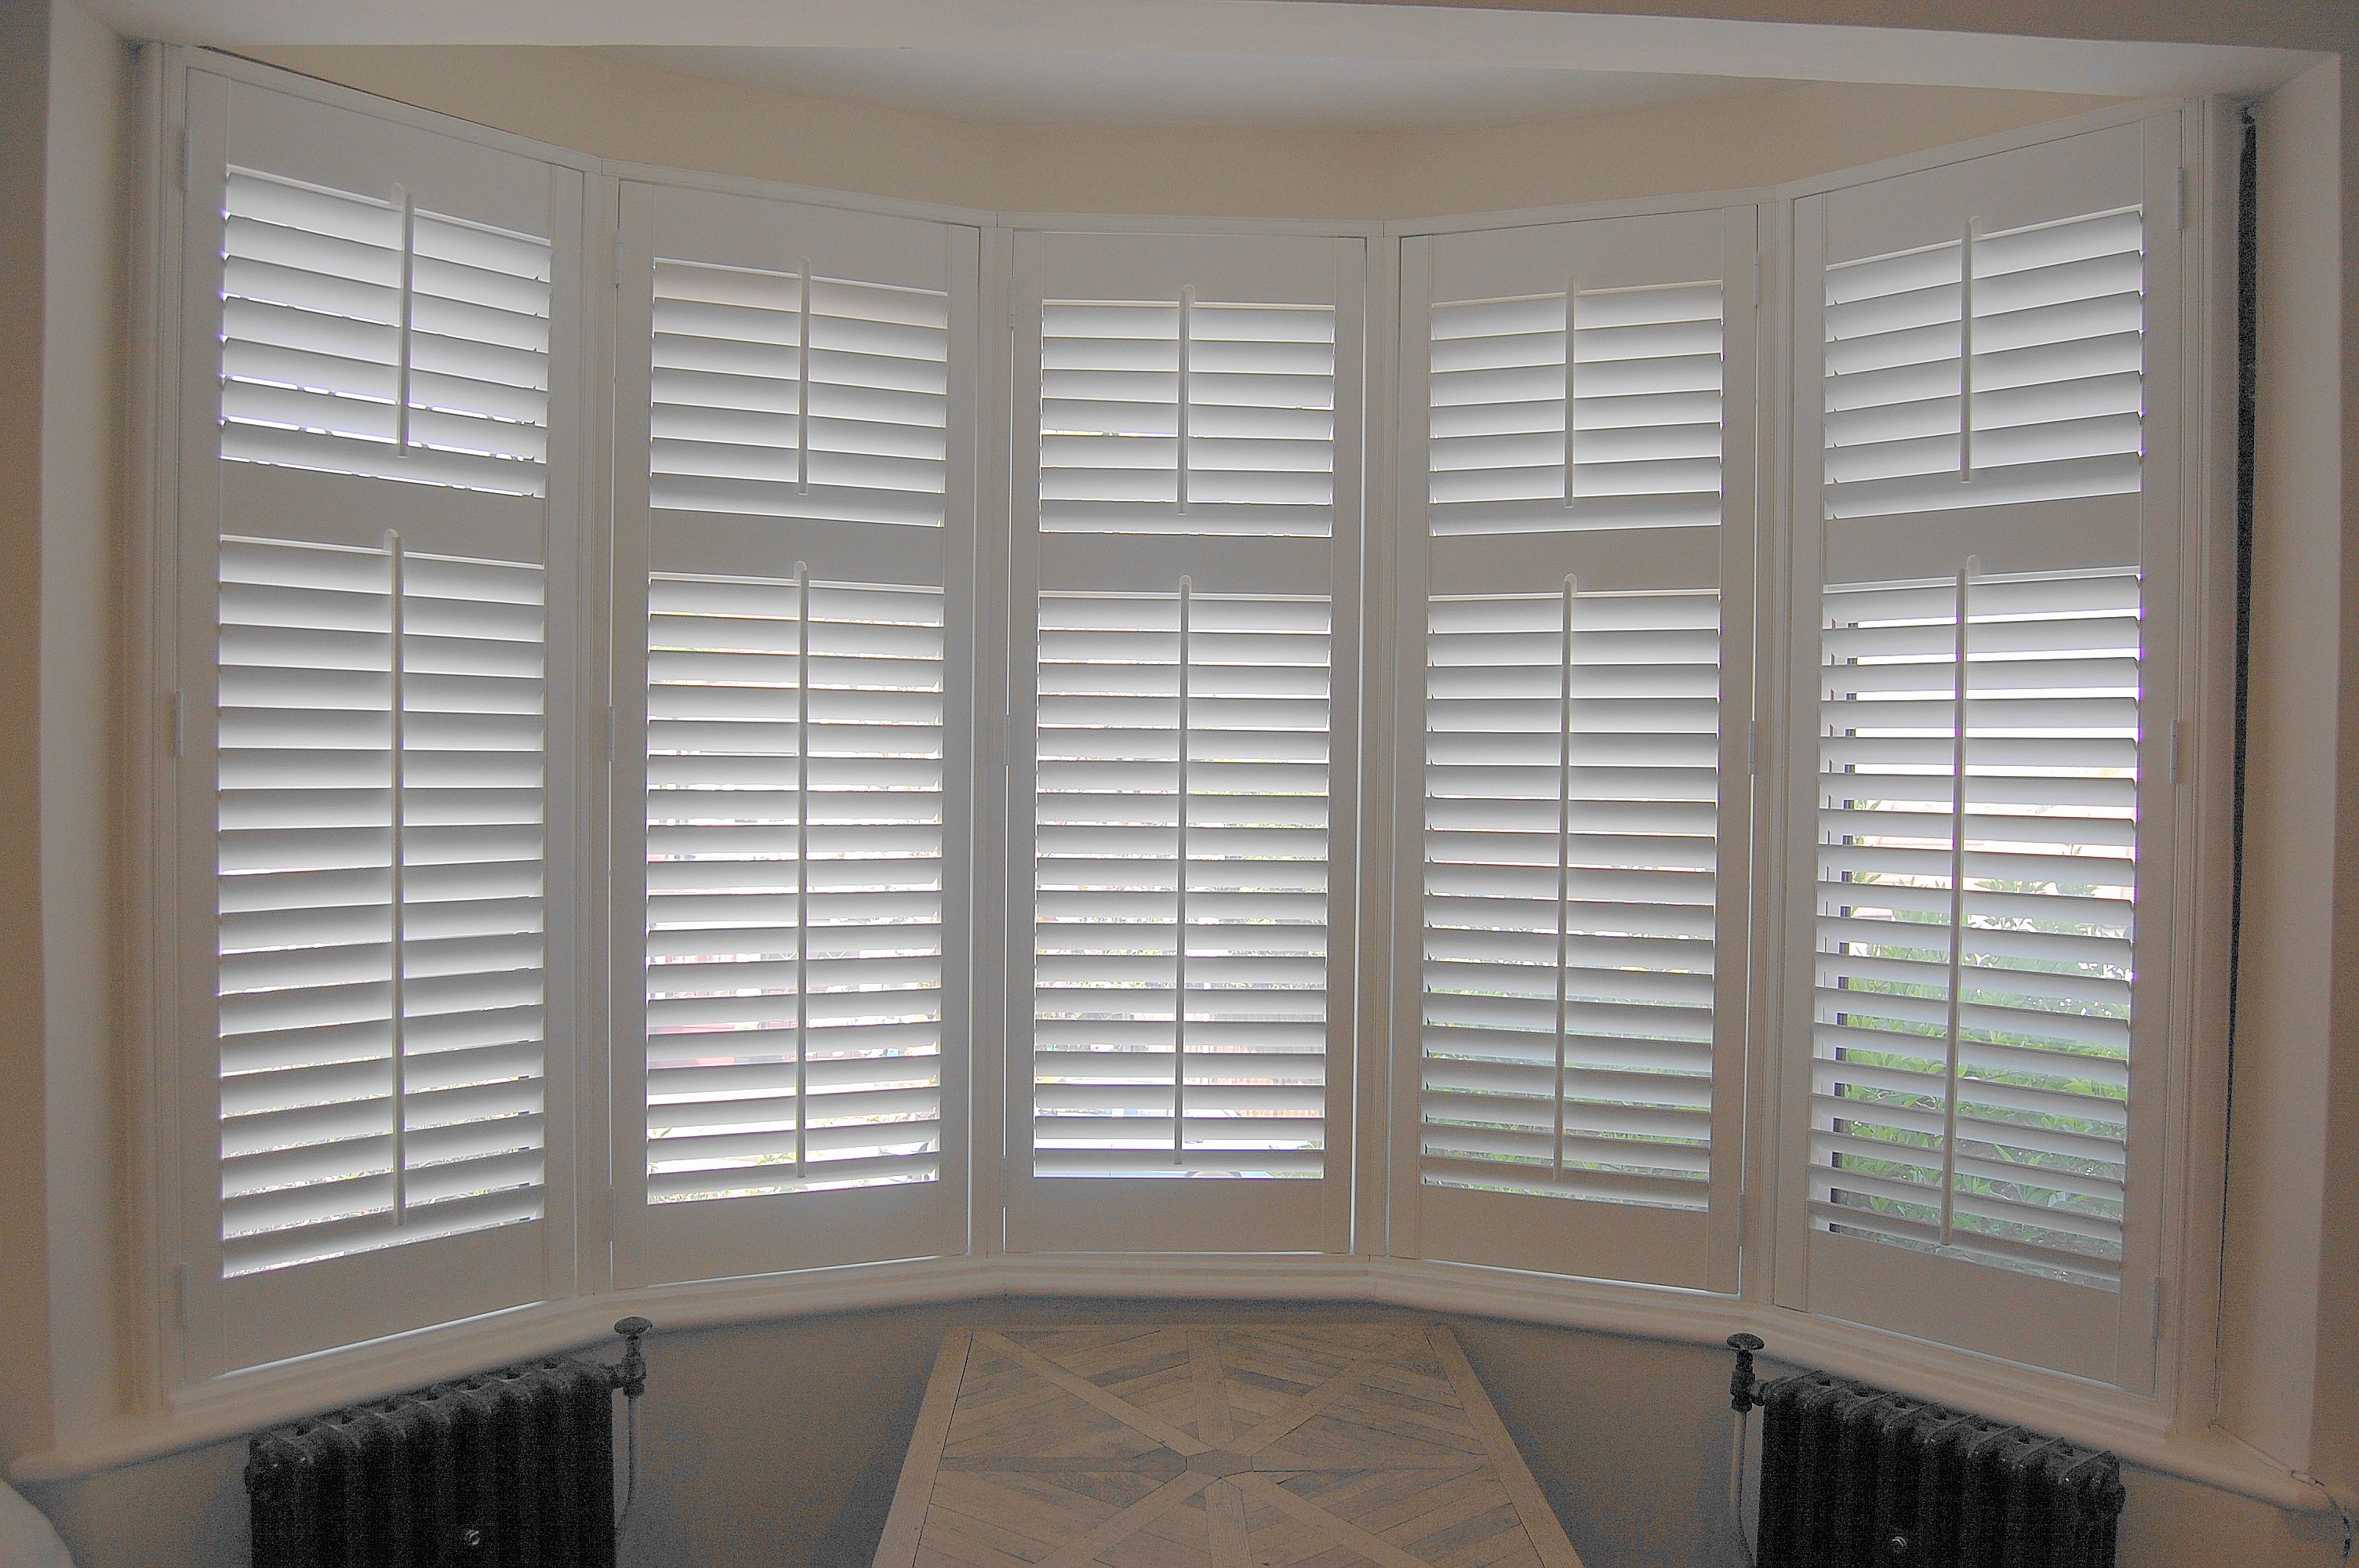 arched photos on of arch blinds shades new window pictures shutters gratograt shutter moon best july lowes round windowshalf fabric half